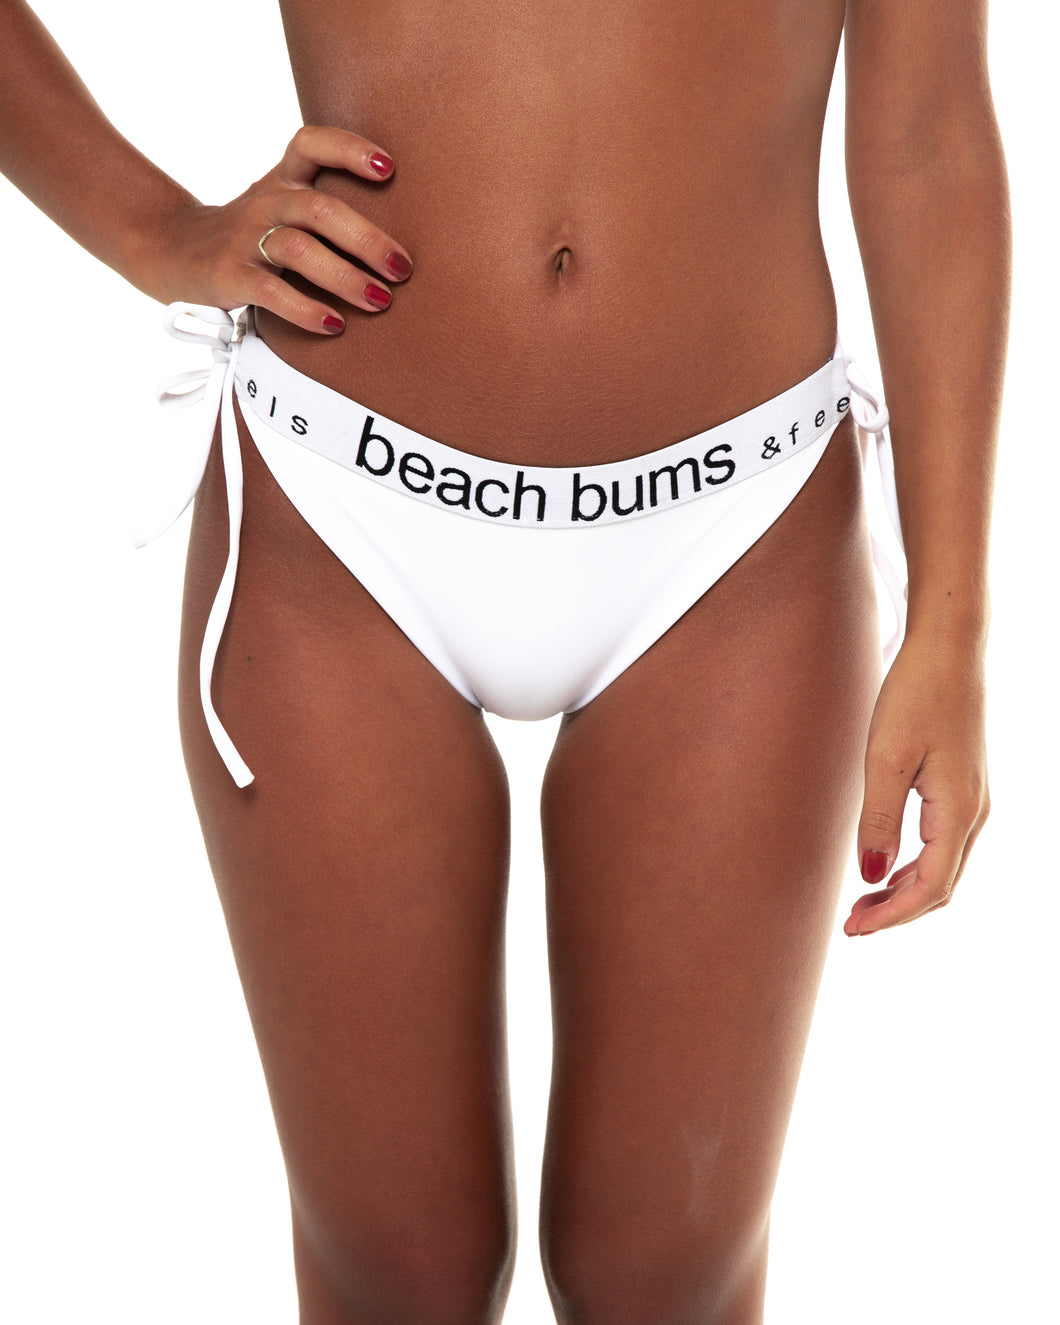 Sperta bikini bottom in White (front)